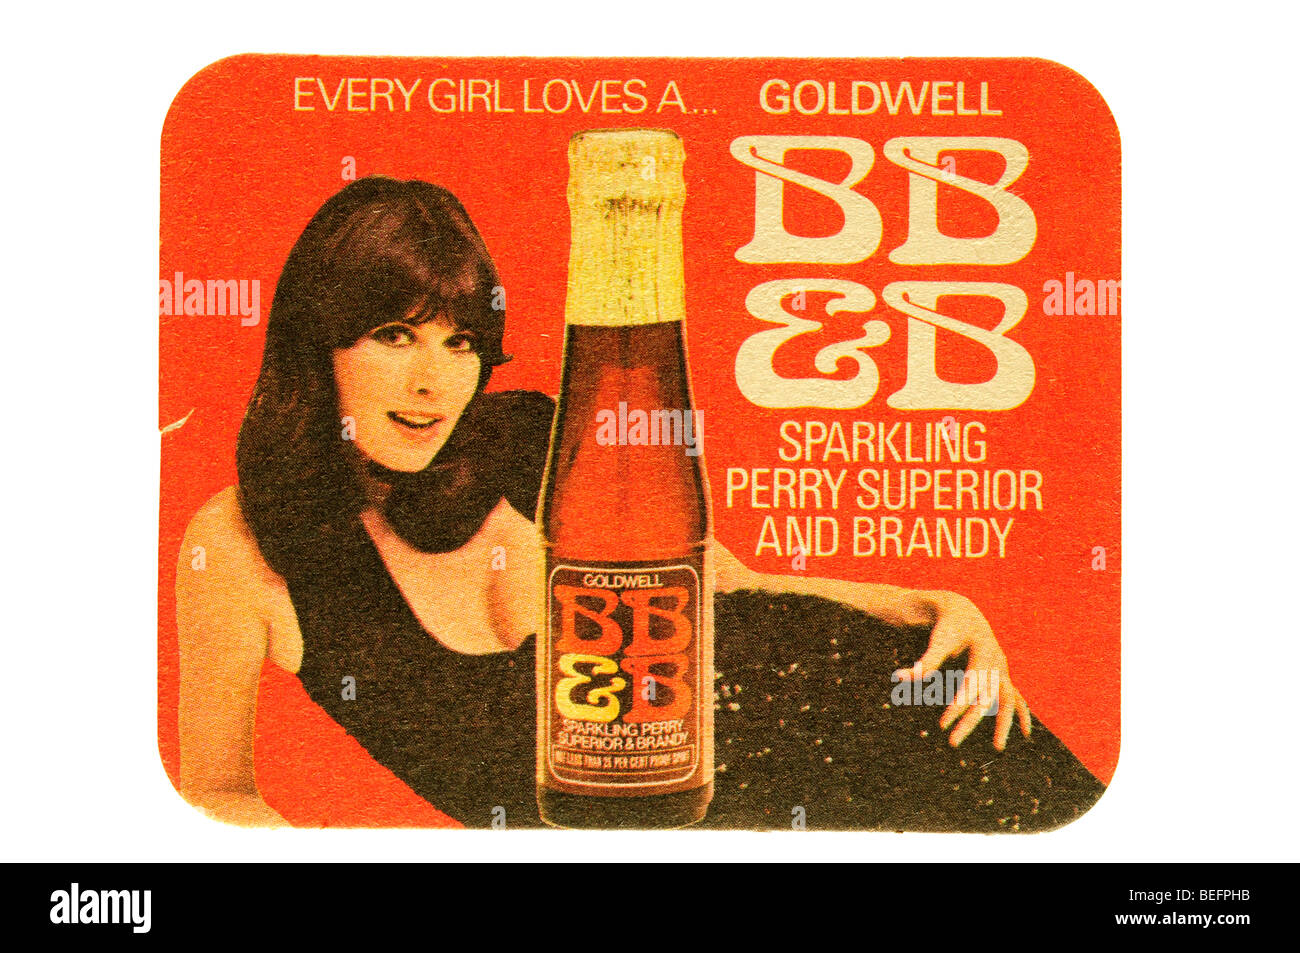 every girl loves a goldwell bb &b sparkling perry superior and brandy - Stock Image